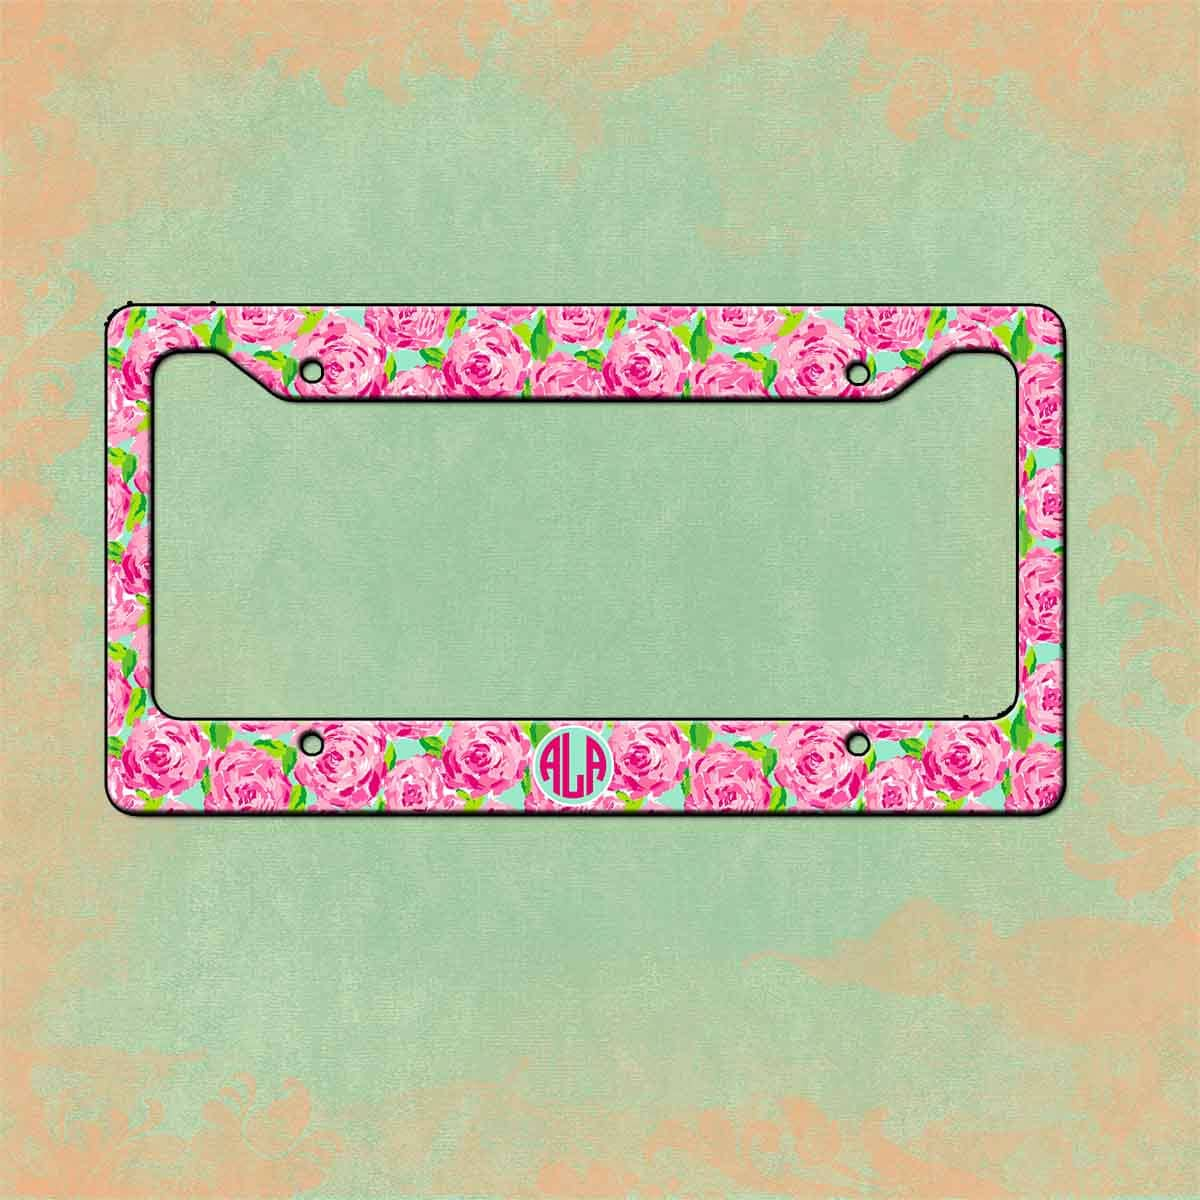 zoom - Monogrammed Picture Frames